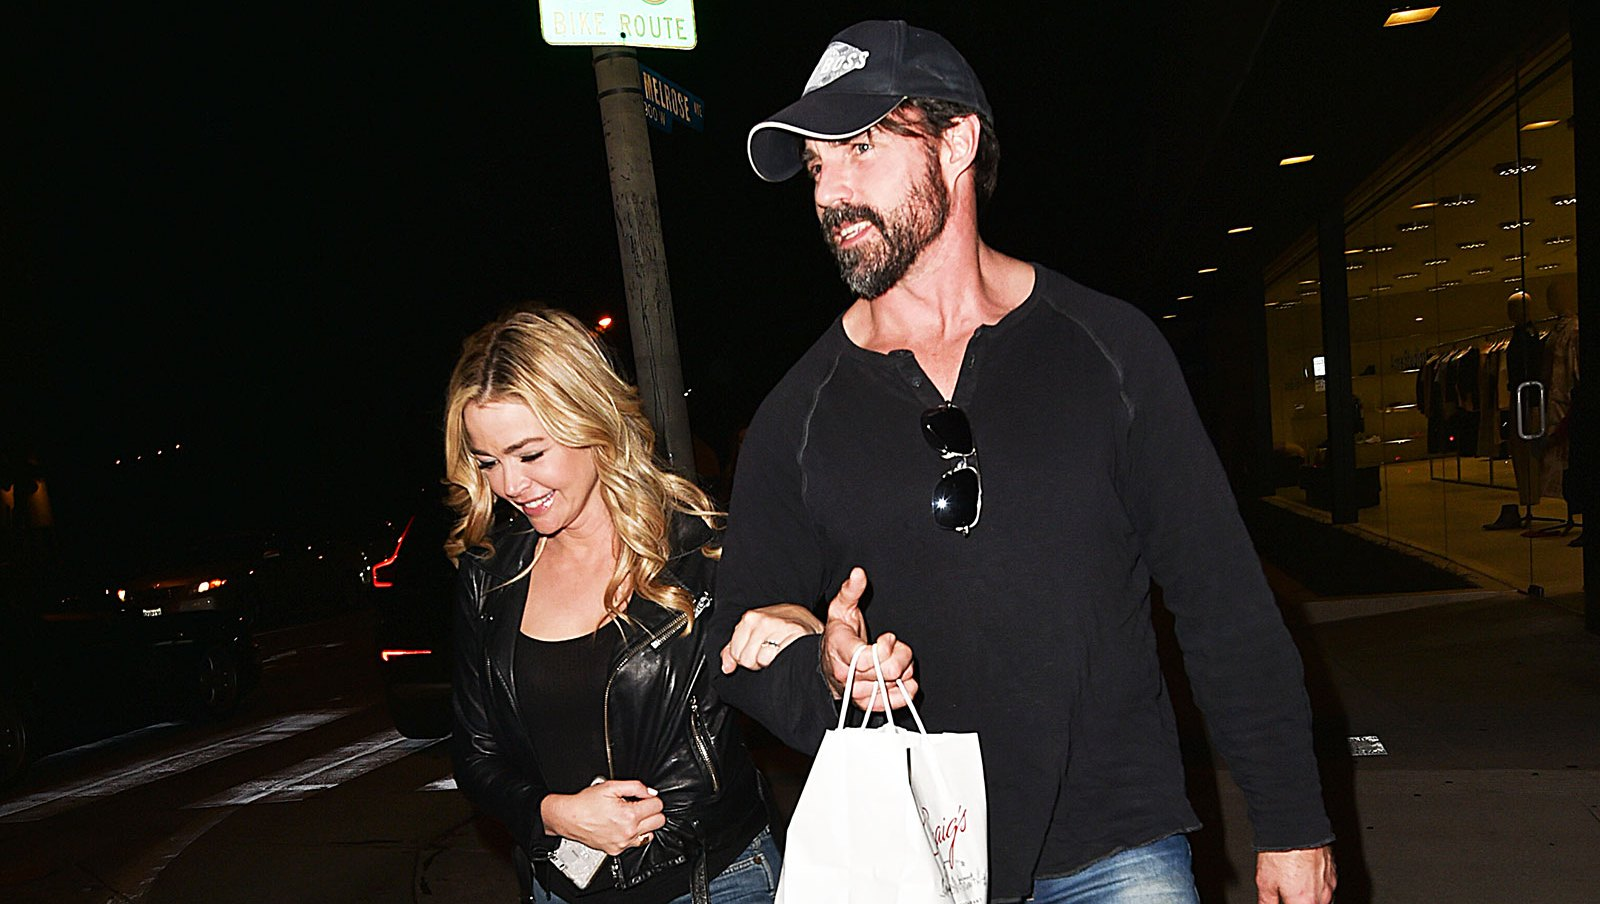 Denise Richards and Hubby Twin Low-Key Style, Plus More Matching Duos